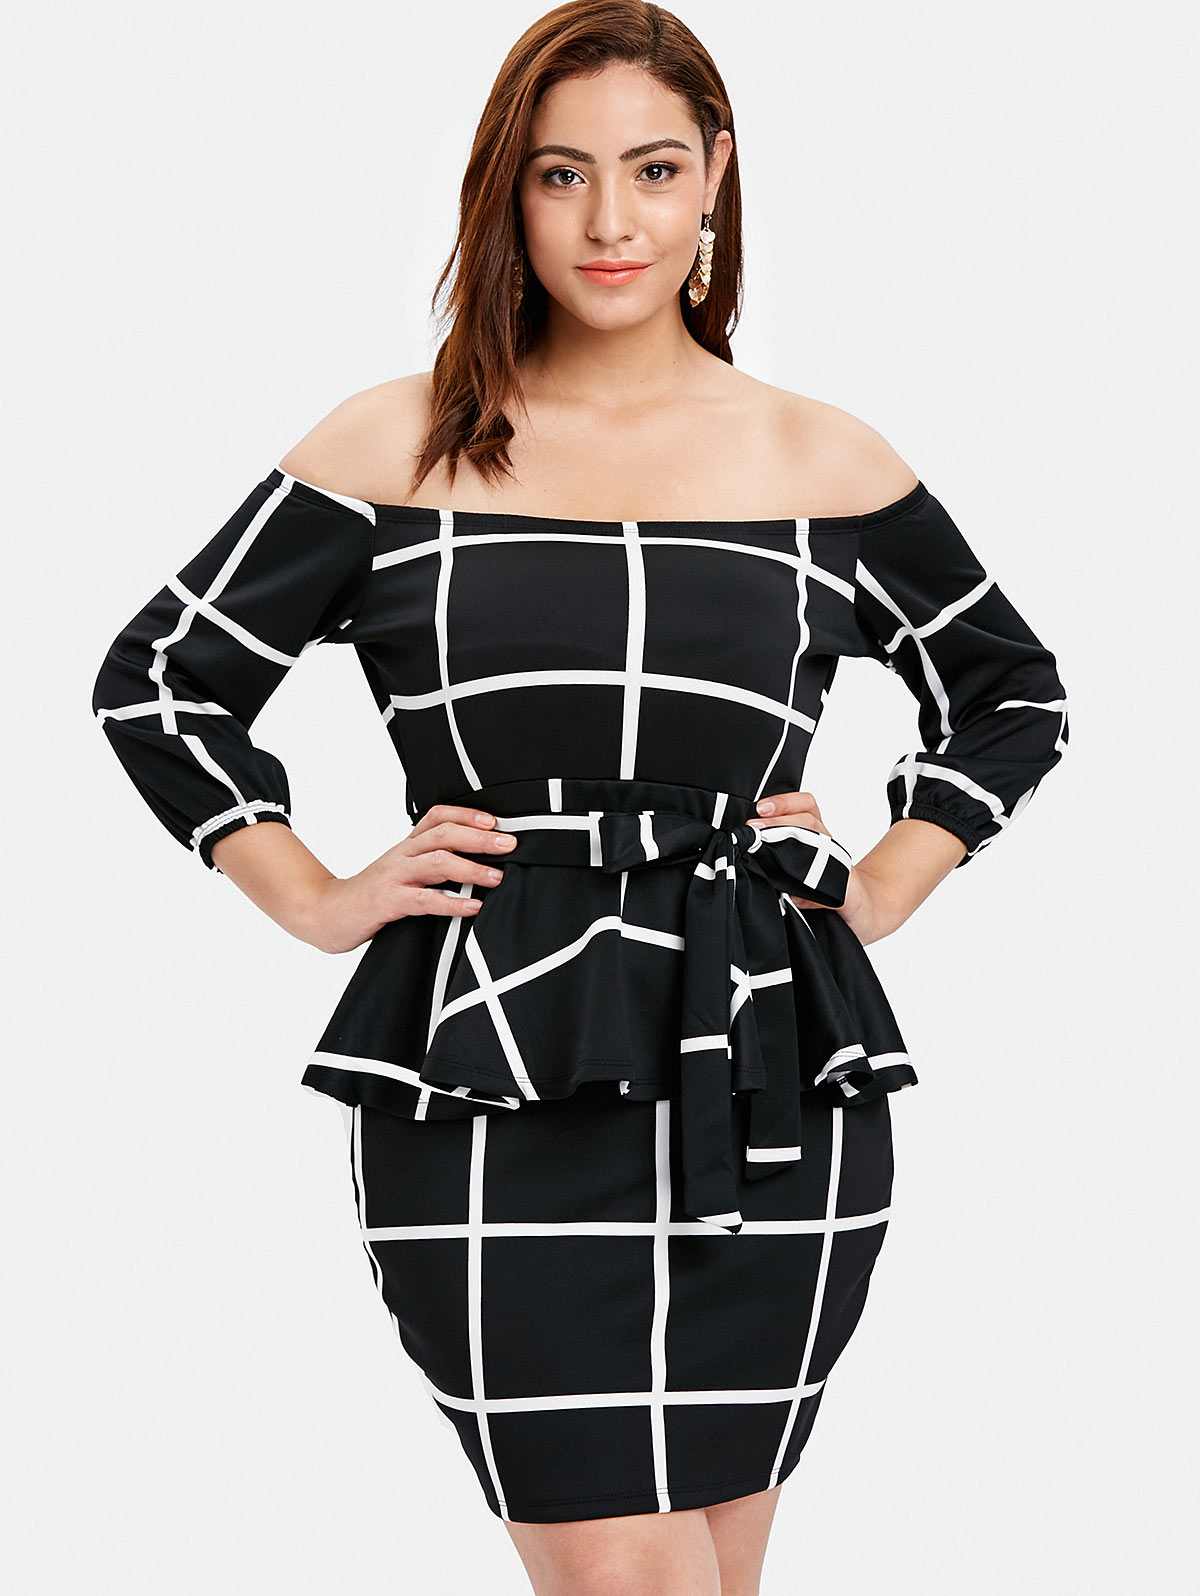 Silhouette Bodycon Dresses Length Mini Neckline Off The Shoulder Sleeve  Length 3 4 Length Sleeves Pattern Type Plaid With Belt Yes Season Fall  338da4817003